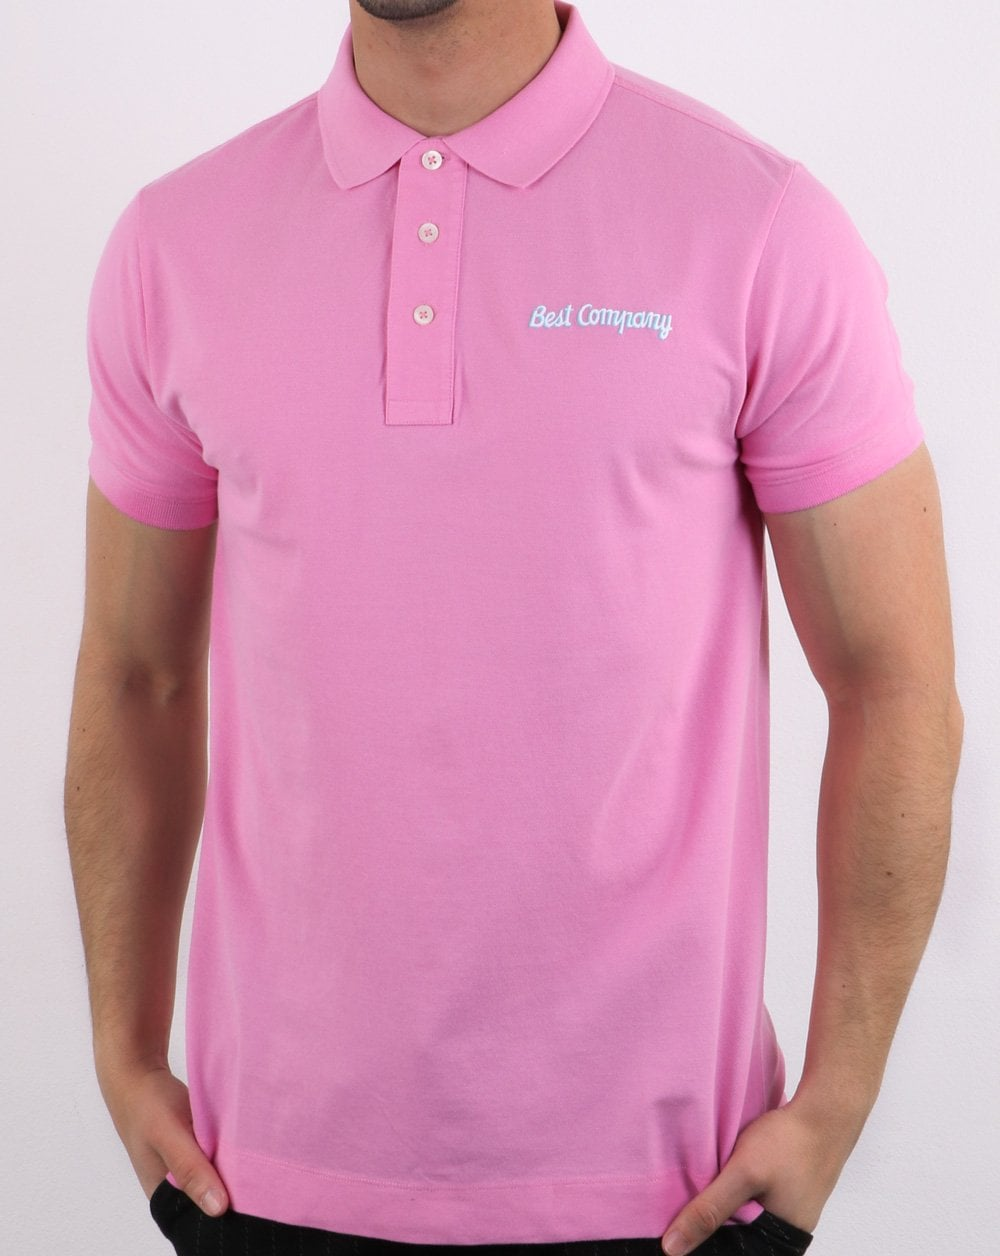 Best Company Pique Polo Shirt Pink